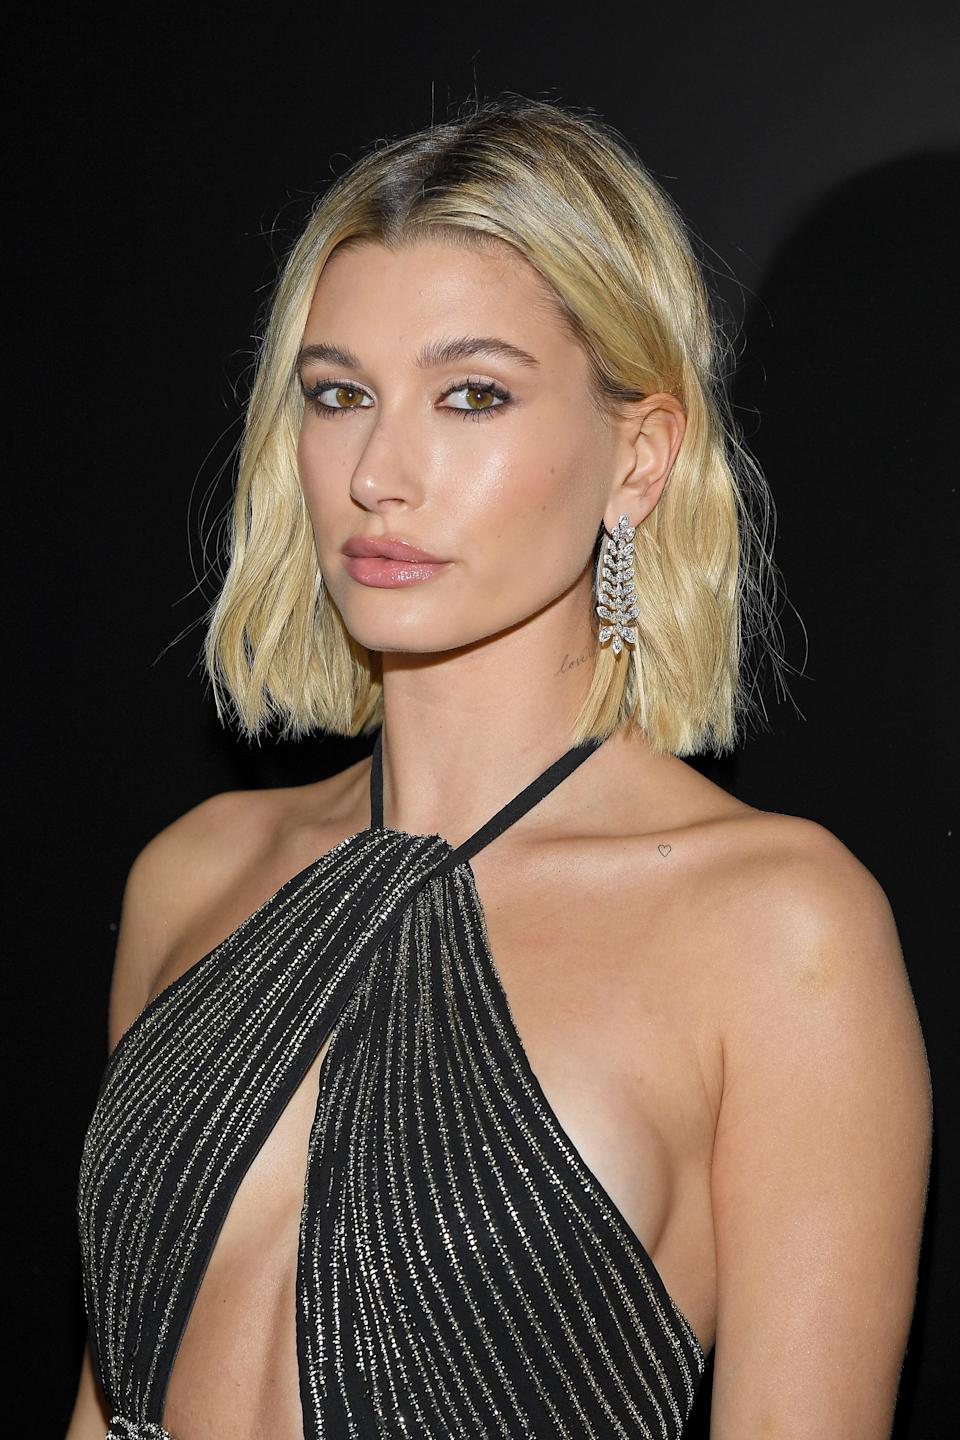 A lob that ends right at the nape of the neck like Hailey Bieber's will always be in style.